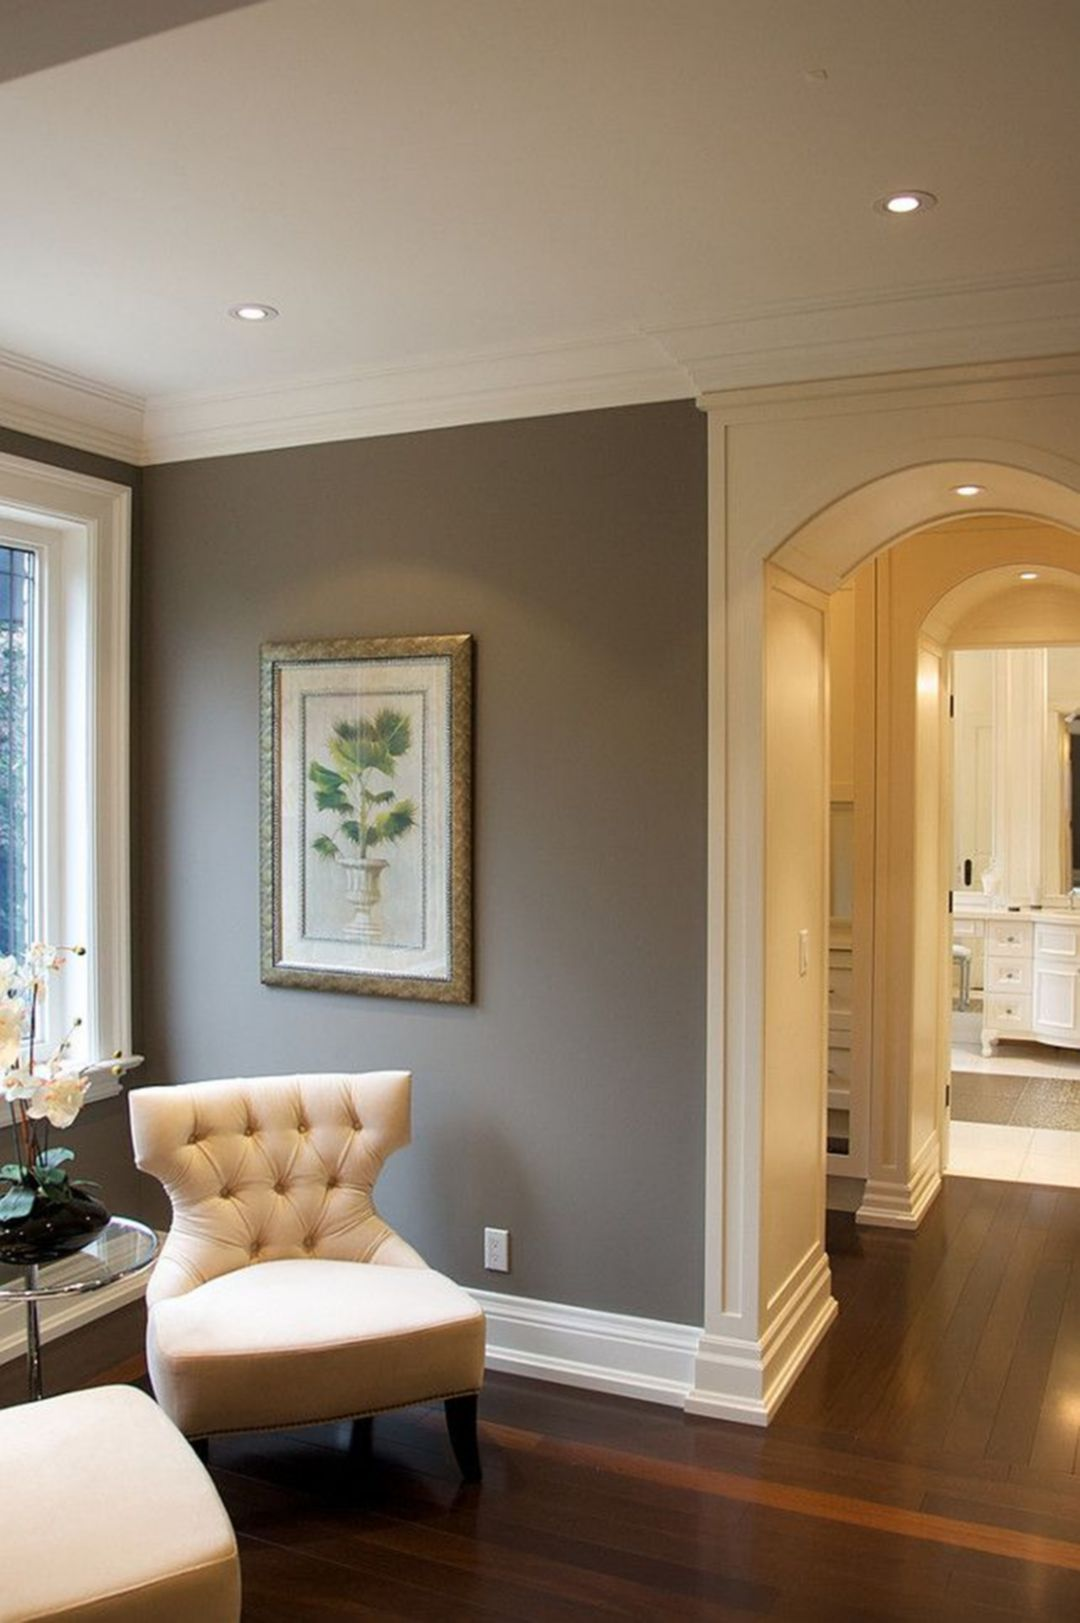 25 gorgeous gray interior paint schemes ideas for your on interior painting ideas color schemes id=94651